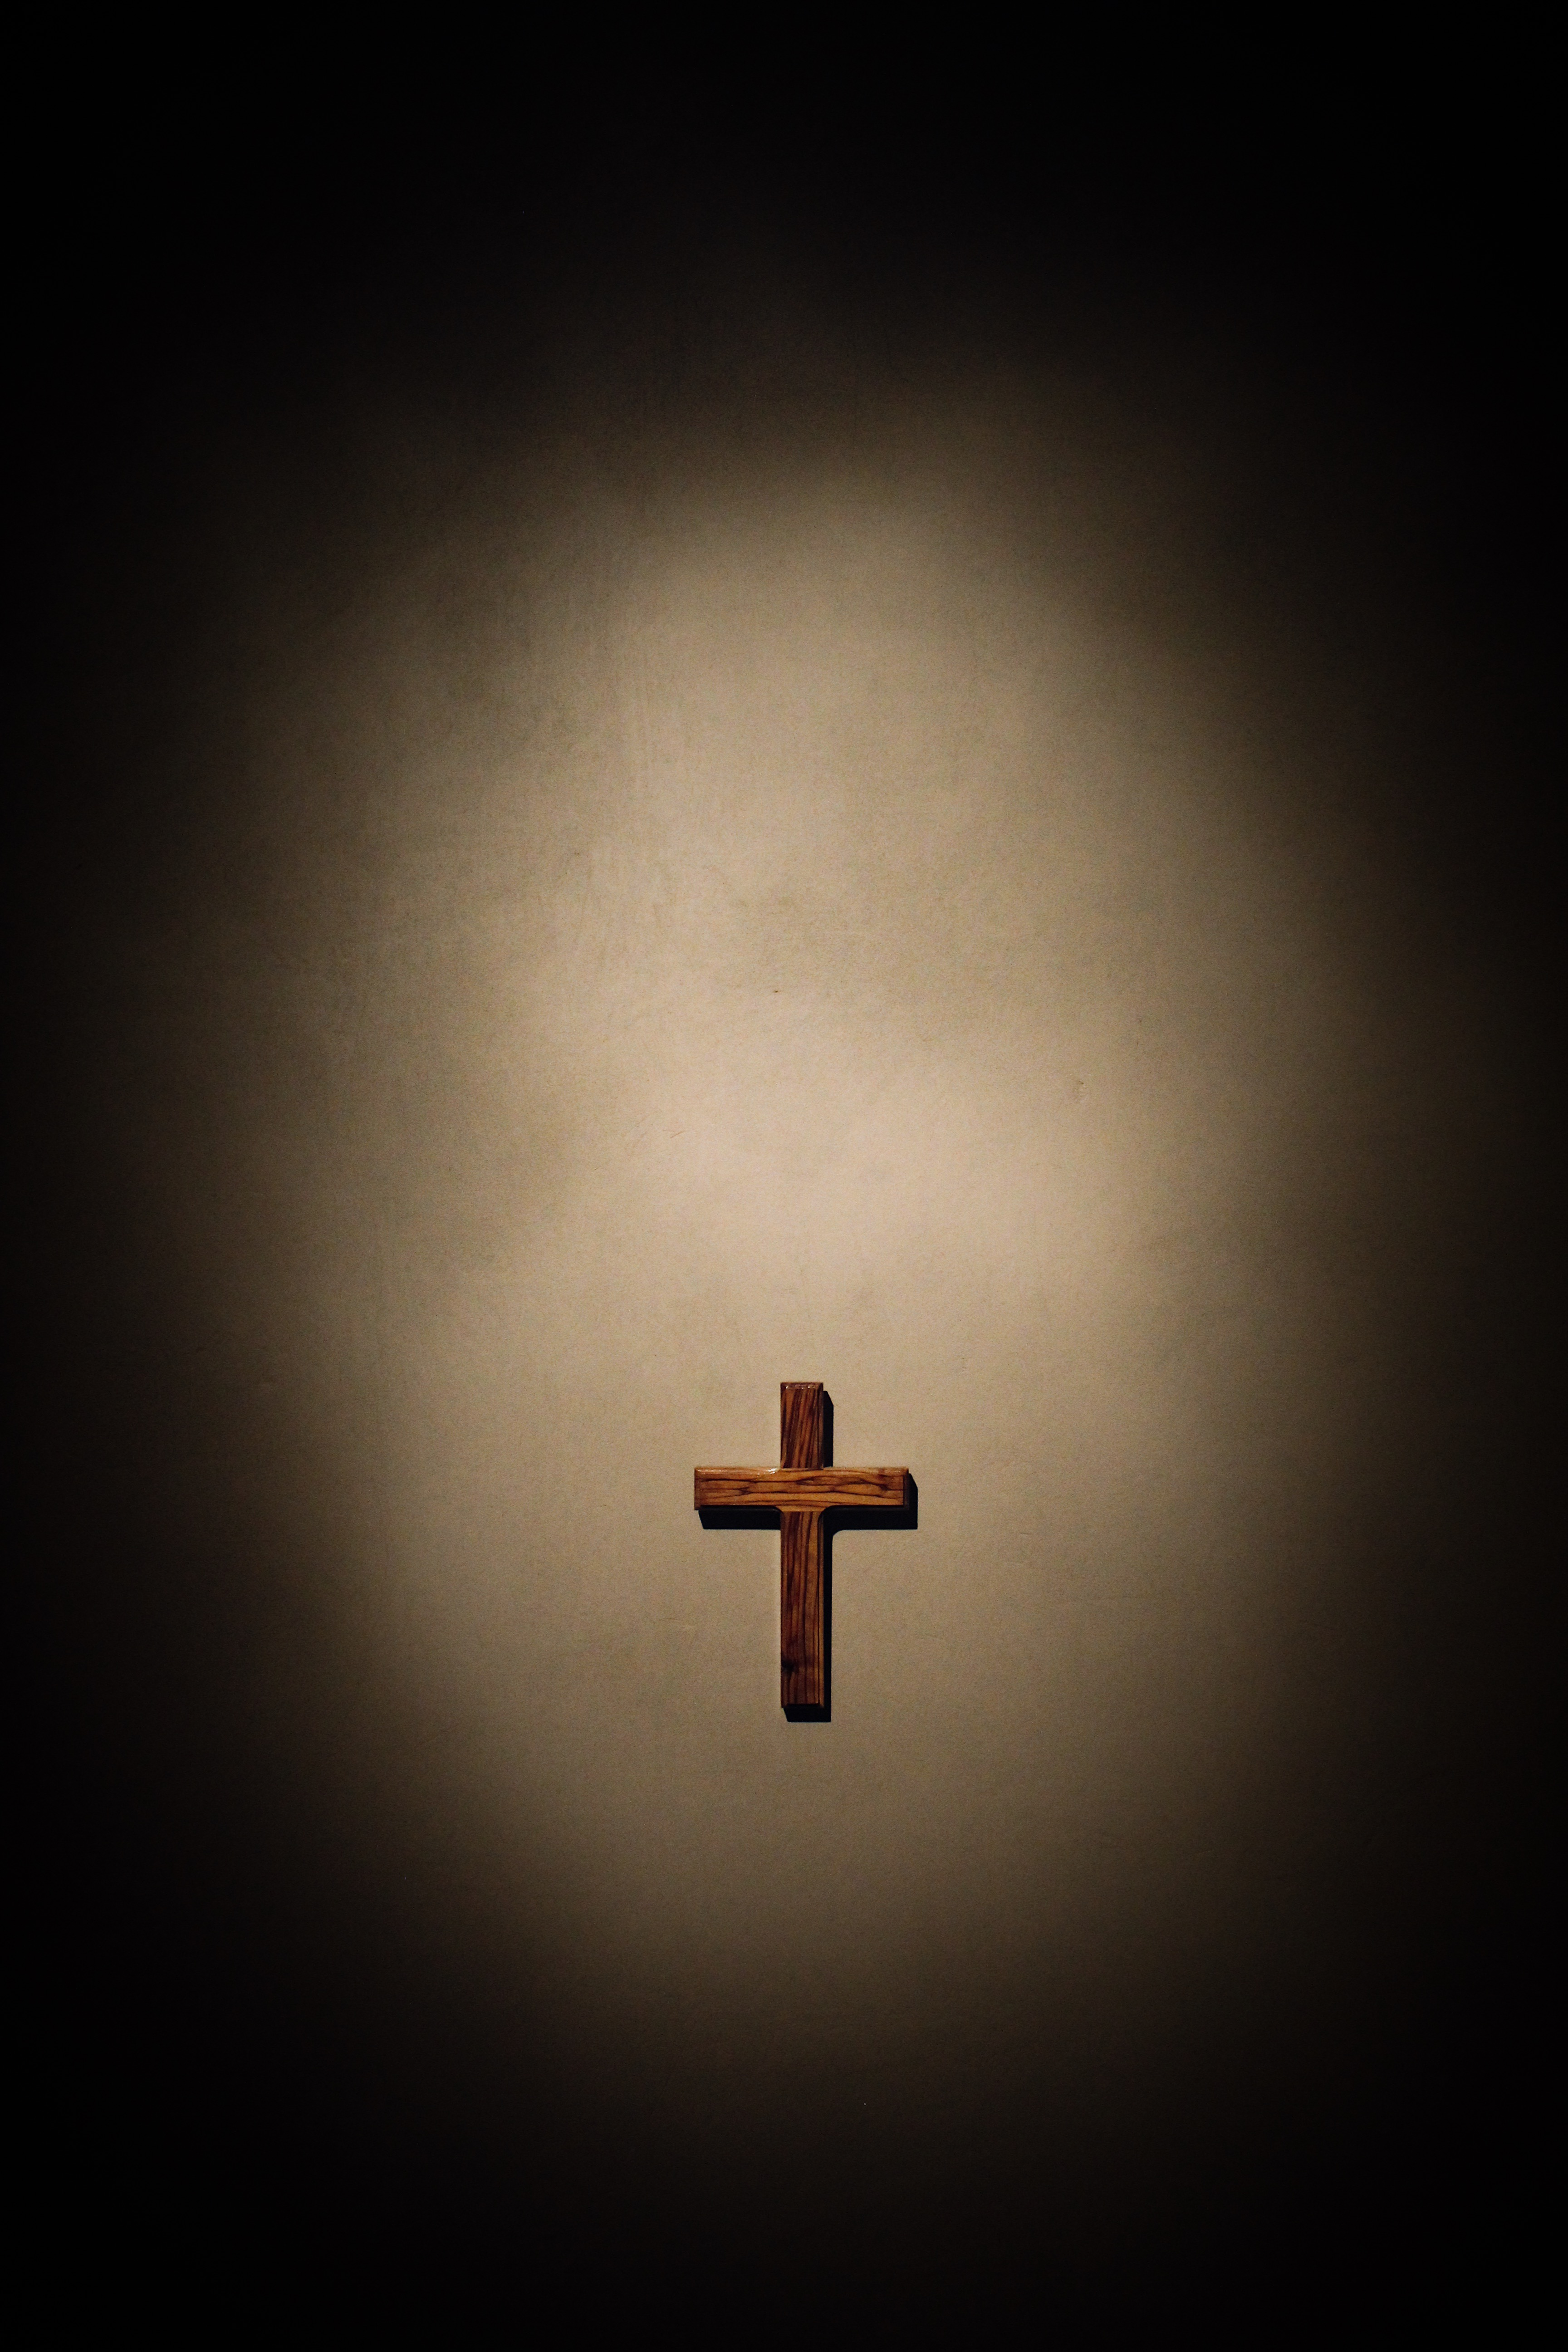 Cross Wallpapers Free HD Download [500 HQ]